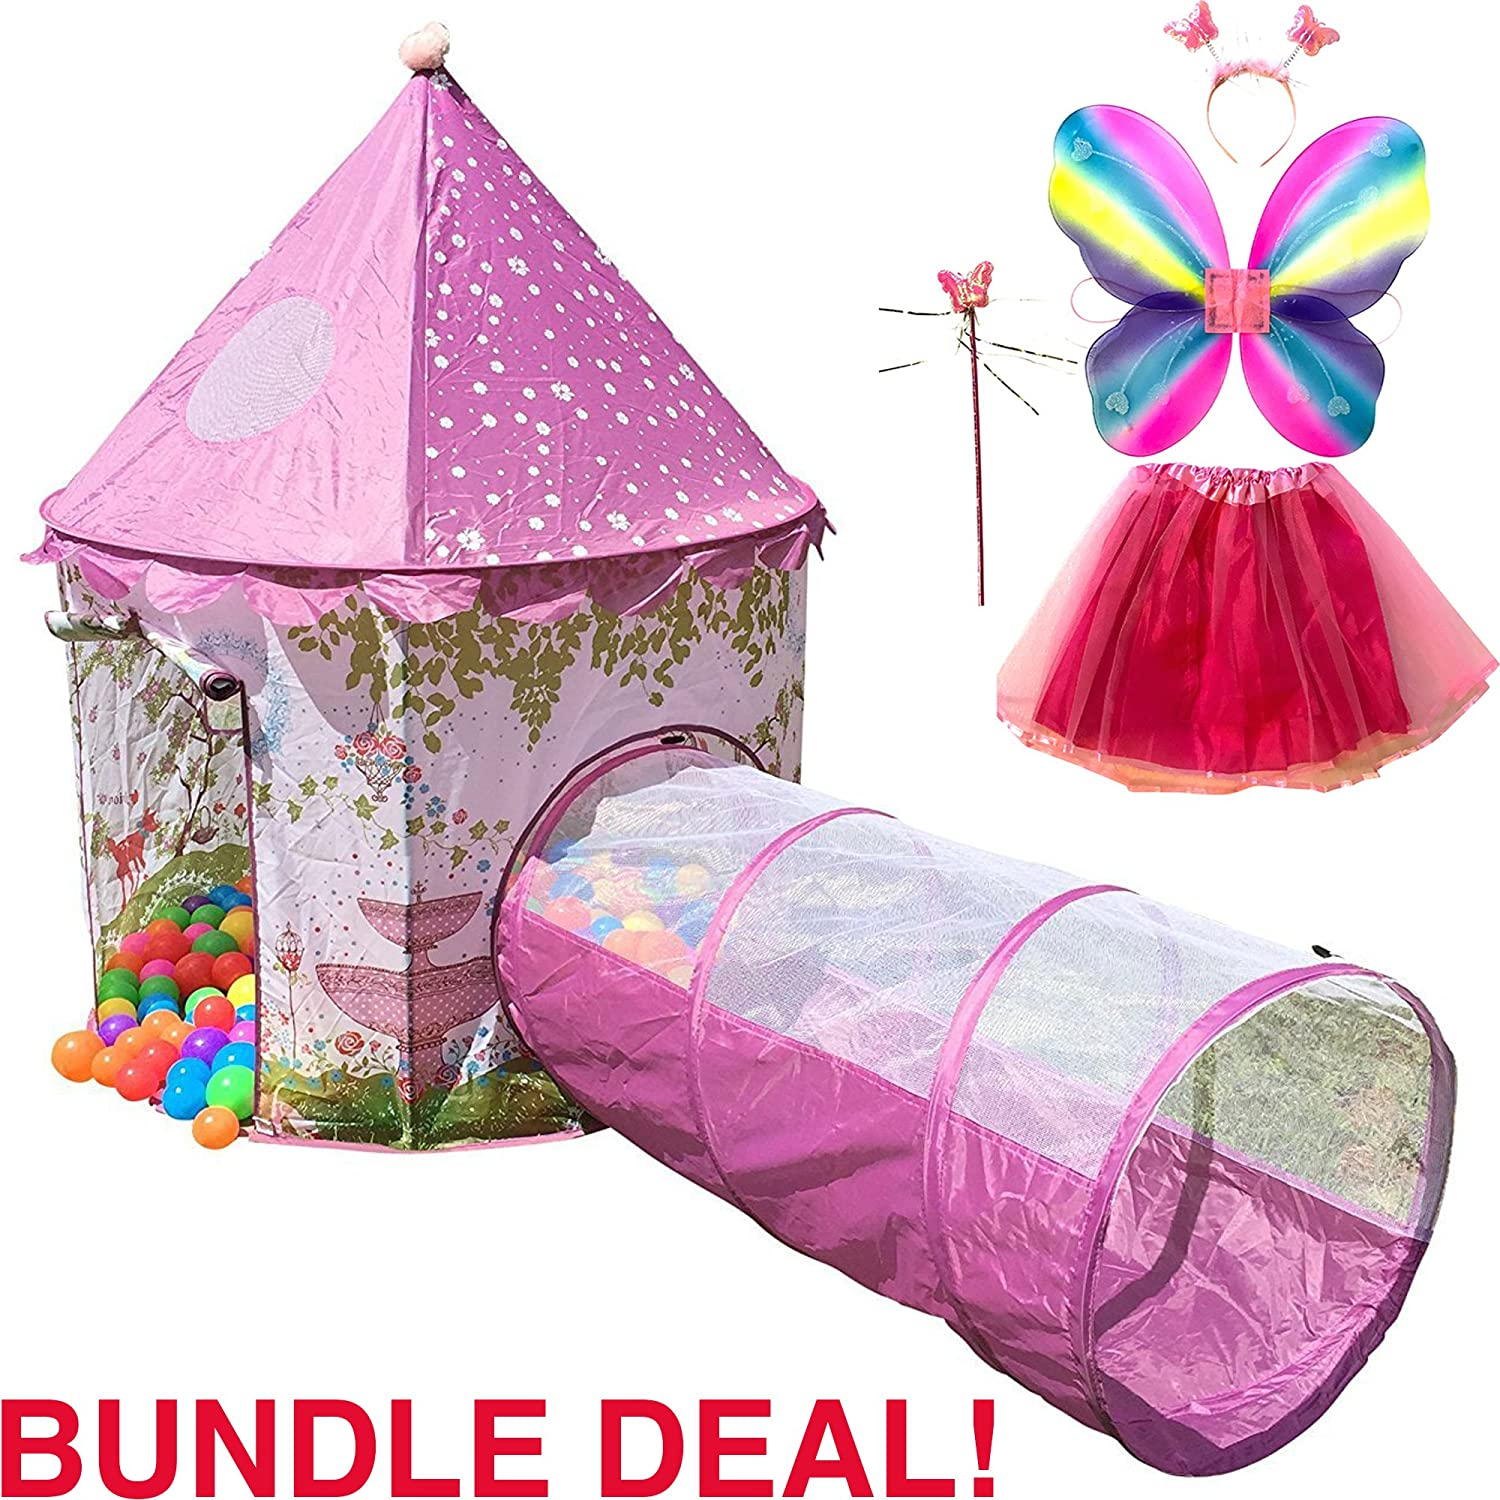 Playz 6-Piece Princess Castle Play Tent with Crawl Tunnel, Butterfly Wings, Tiara Crown, Princess Wand, Tutu Dress Up Costume, and Pink Girls Playhouse Fairy Tale Carrying Case Castle-Tent-Tunnel